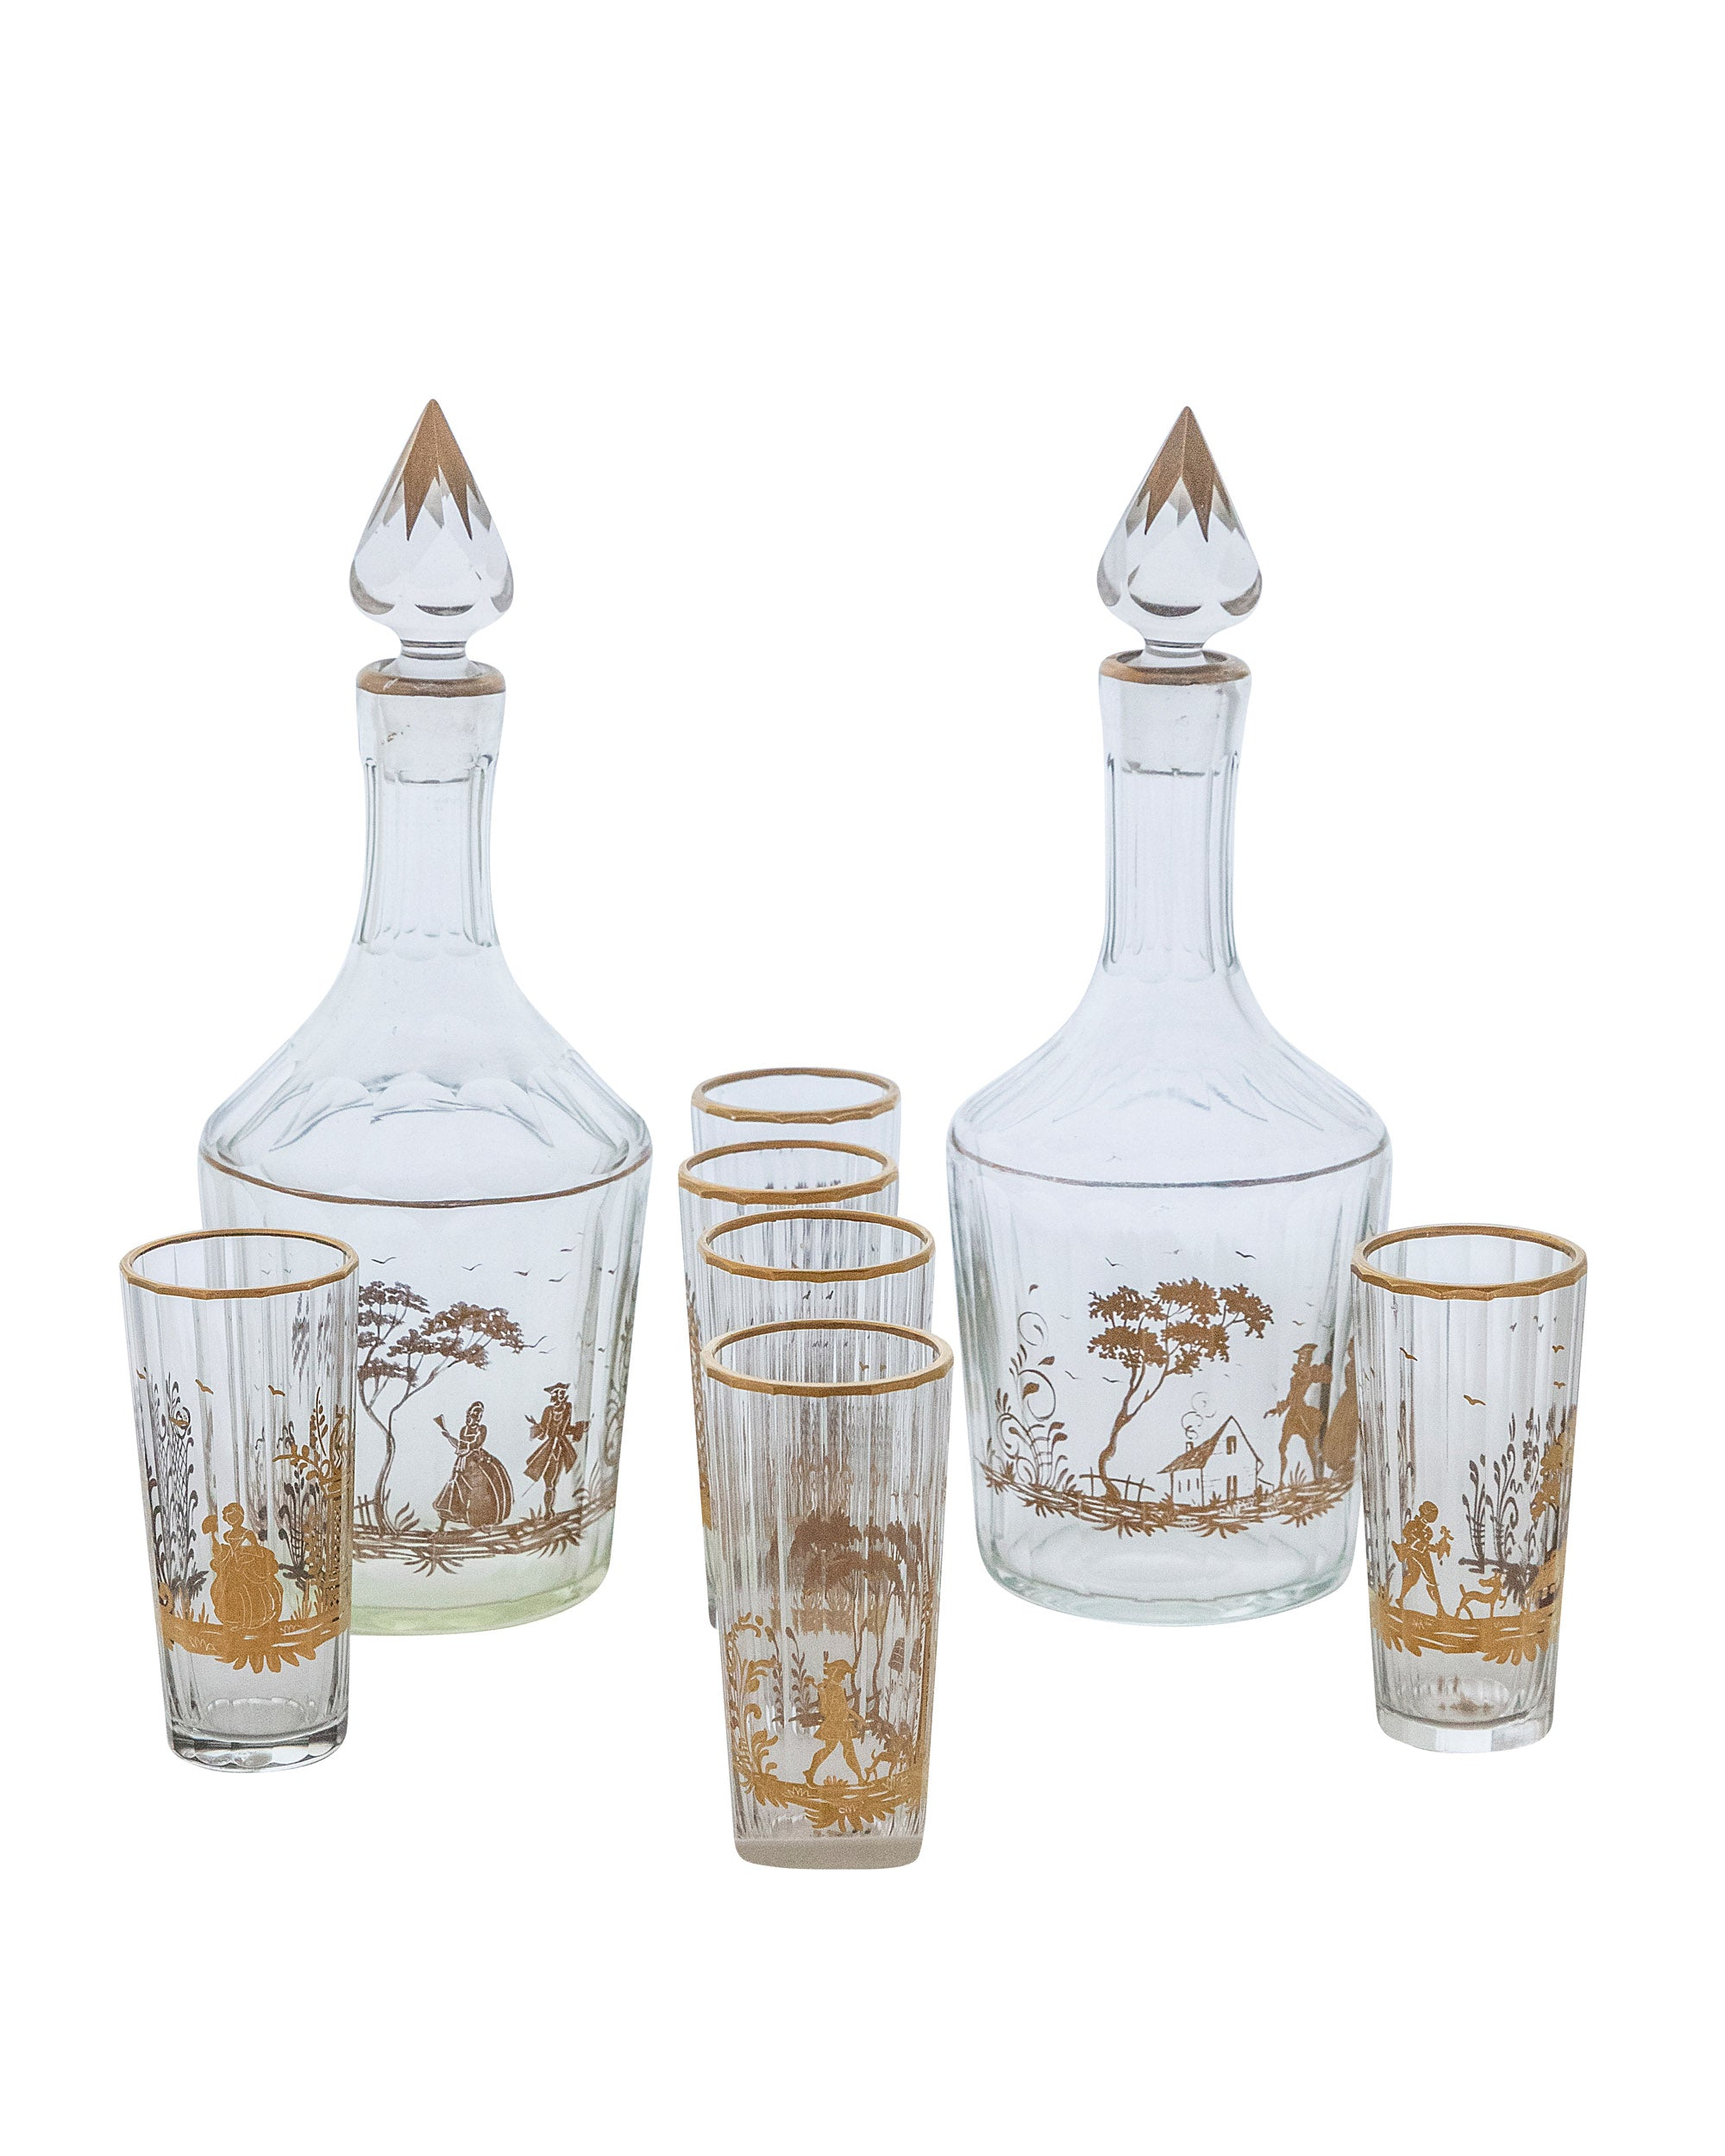 Hand painted set consisting of two bottles and six fluted crystal glasses